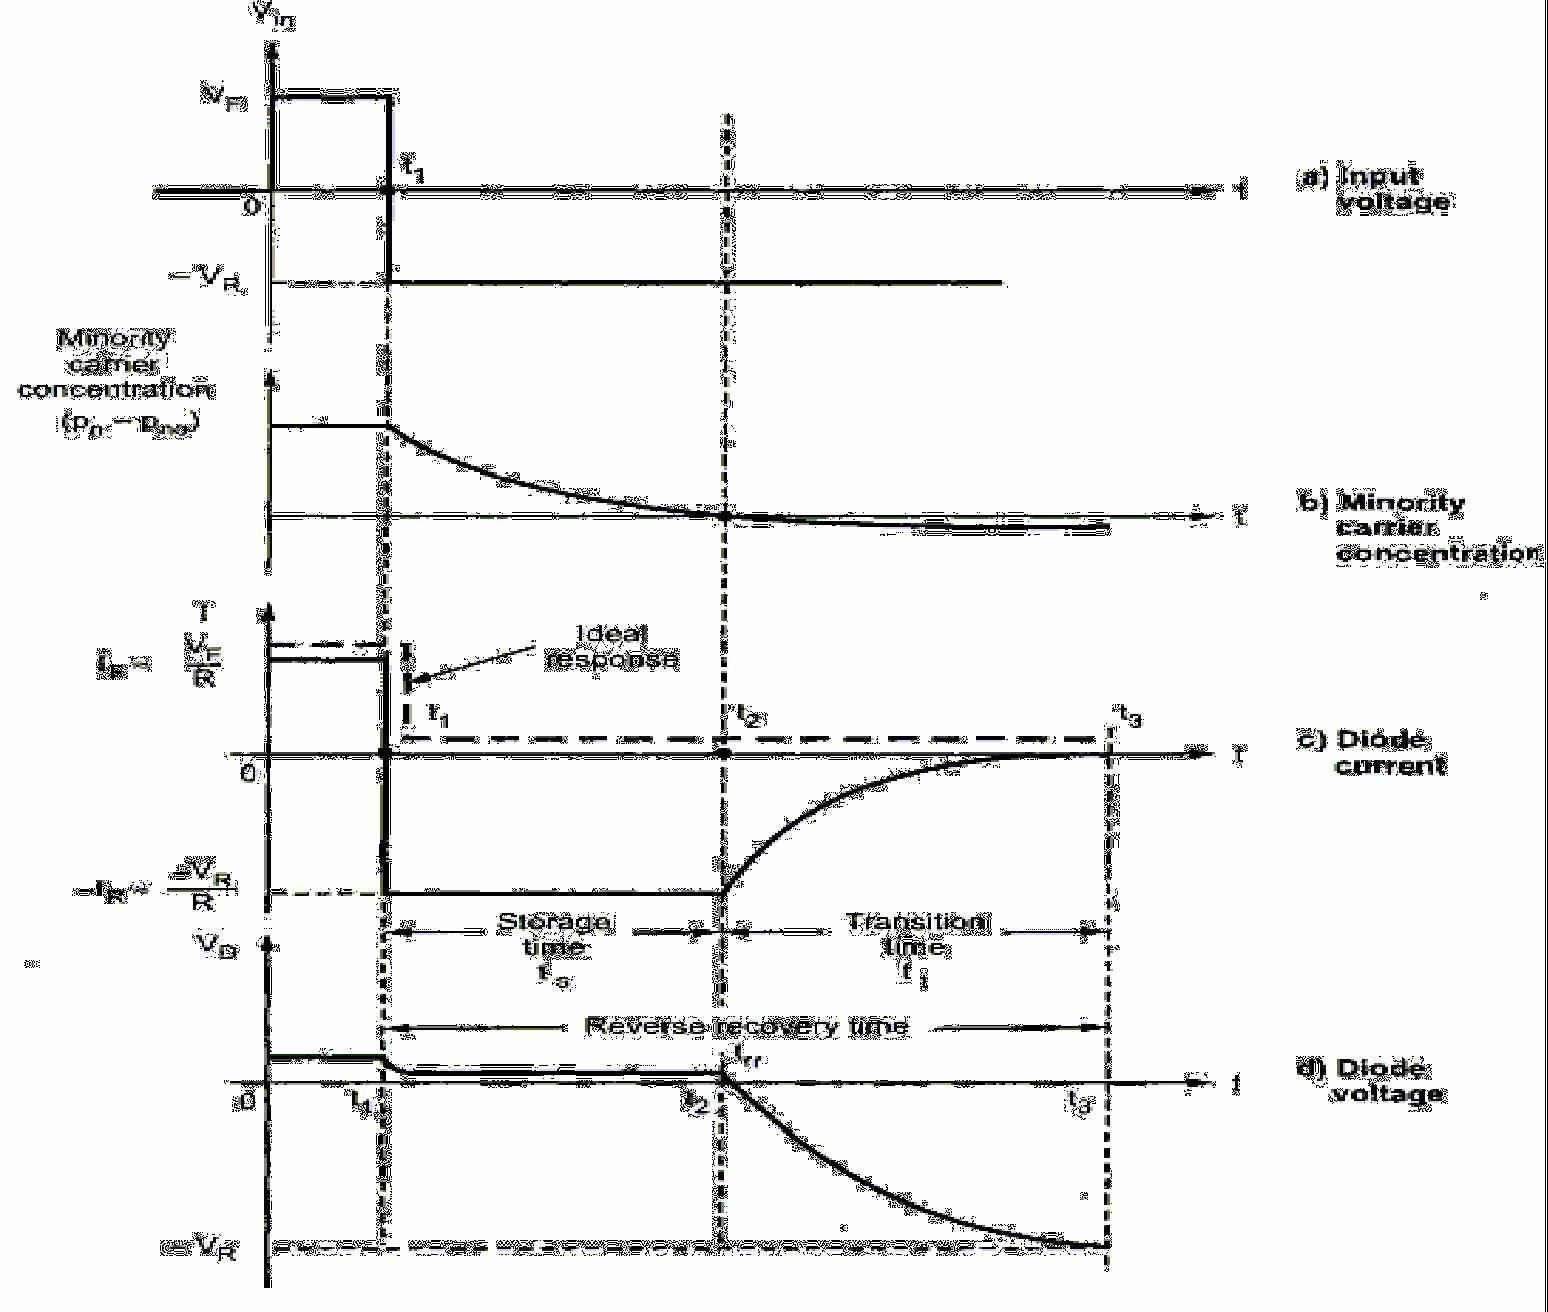 the reverse recovery time depends on the rc time constant where c is a transition capacitance of a diode thus the transition capacitance plays an important  [ 1548 x 1312 Pixel ]